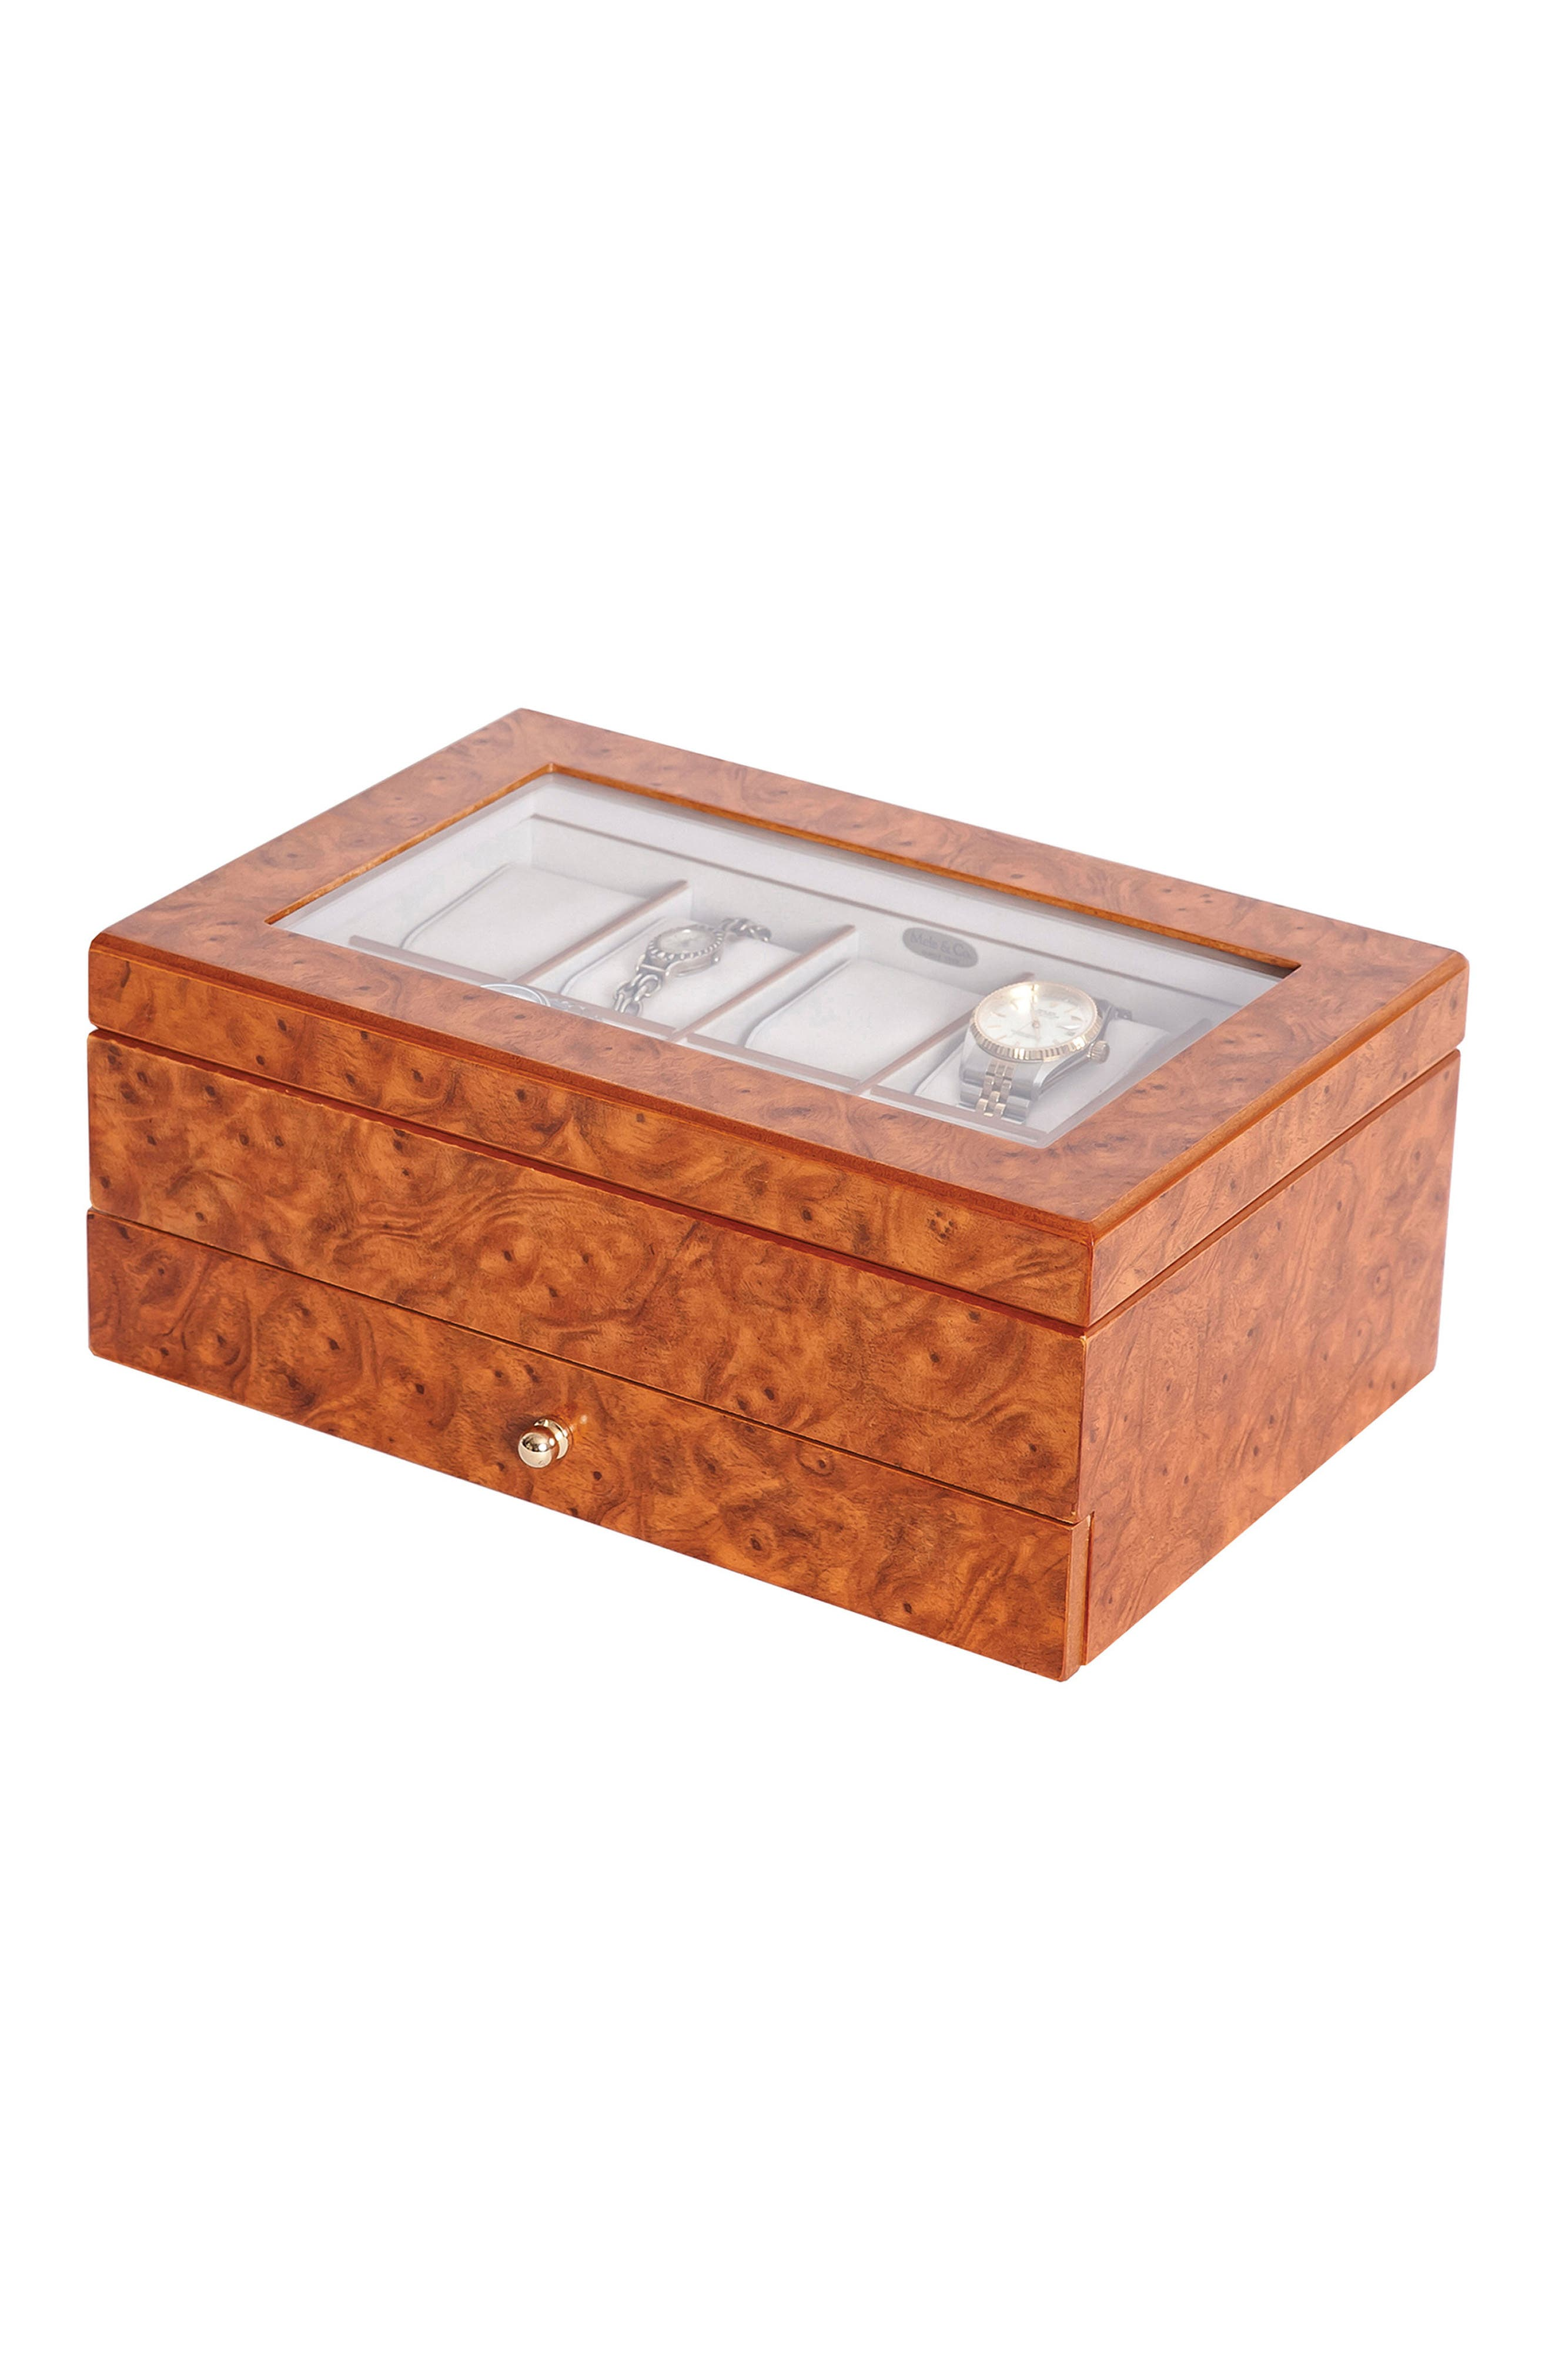 Alternate Image 1 Selected - Mele & Co. Peyton Glass Top Watch Box